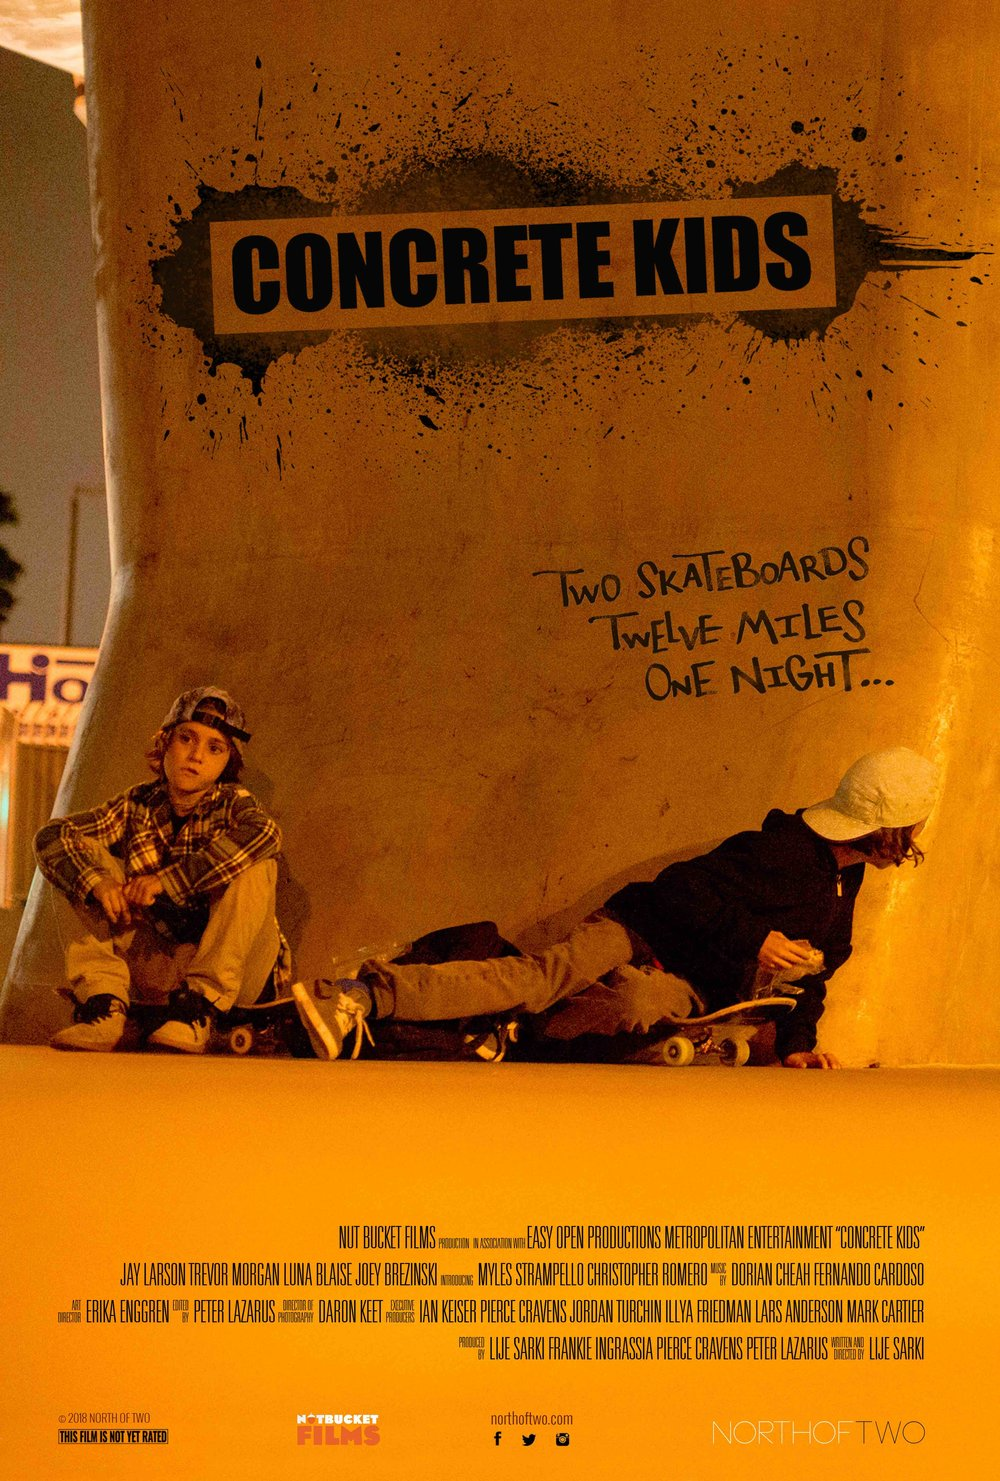 ConcreteKidsPOSTER_final_WEB.jpg